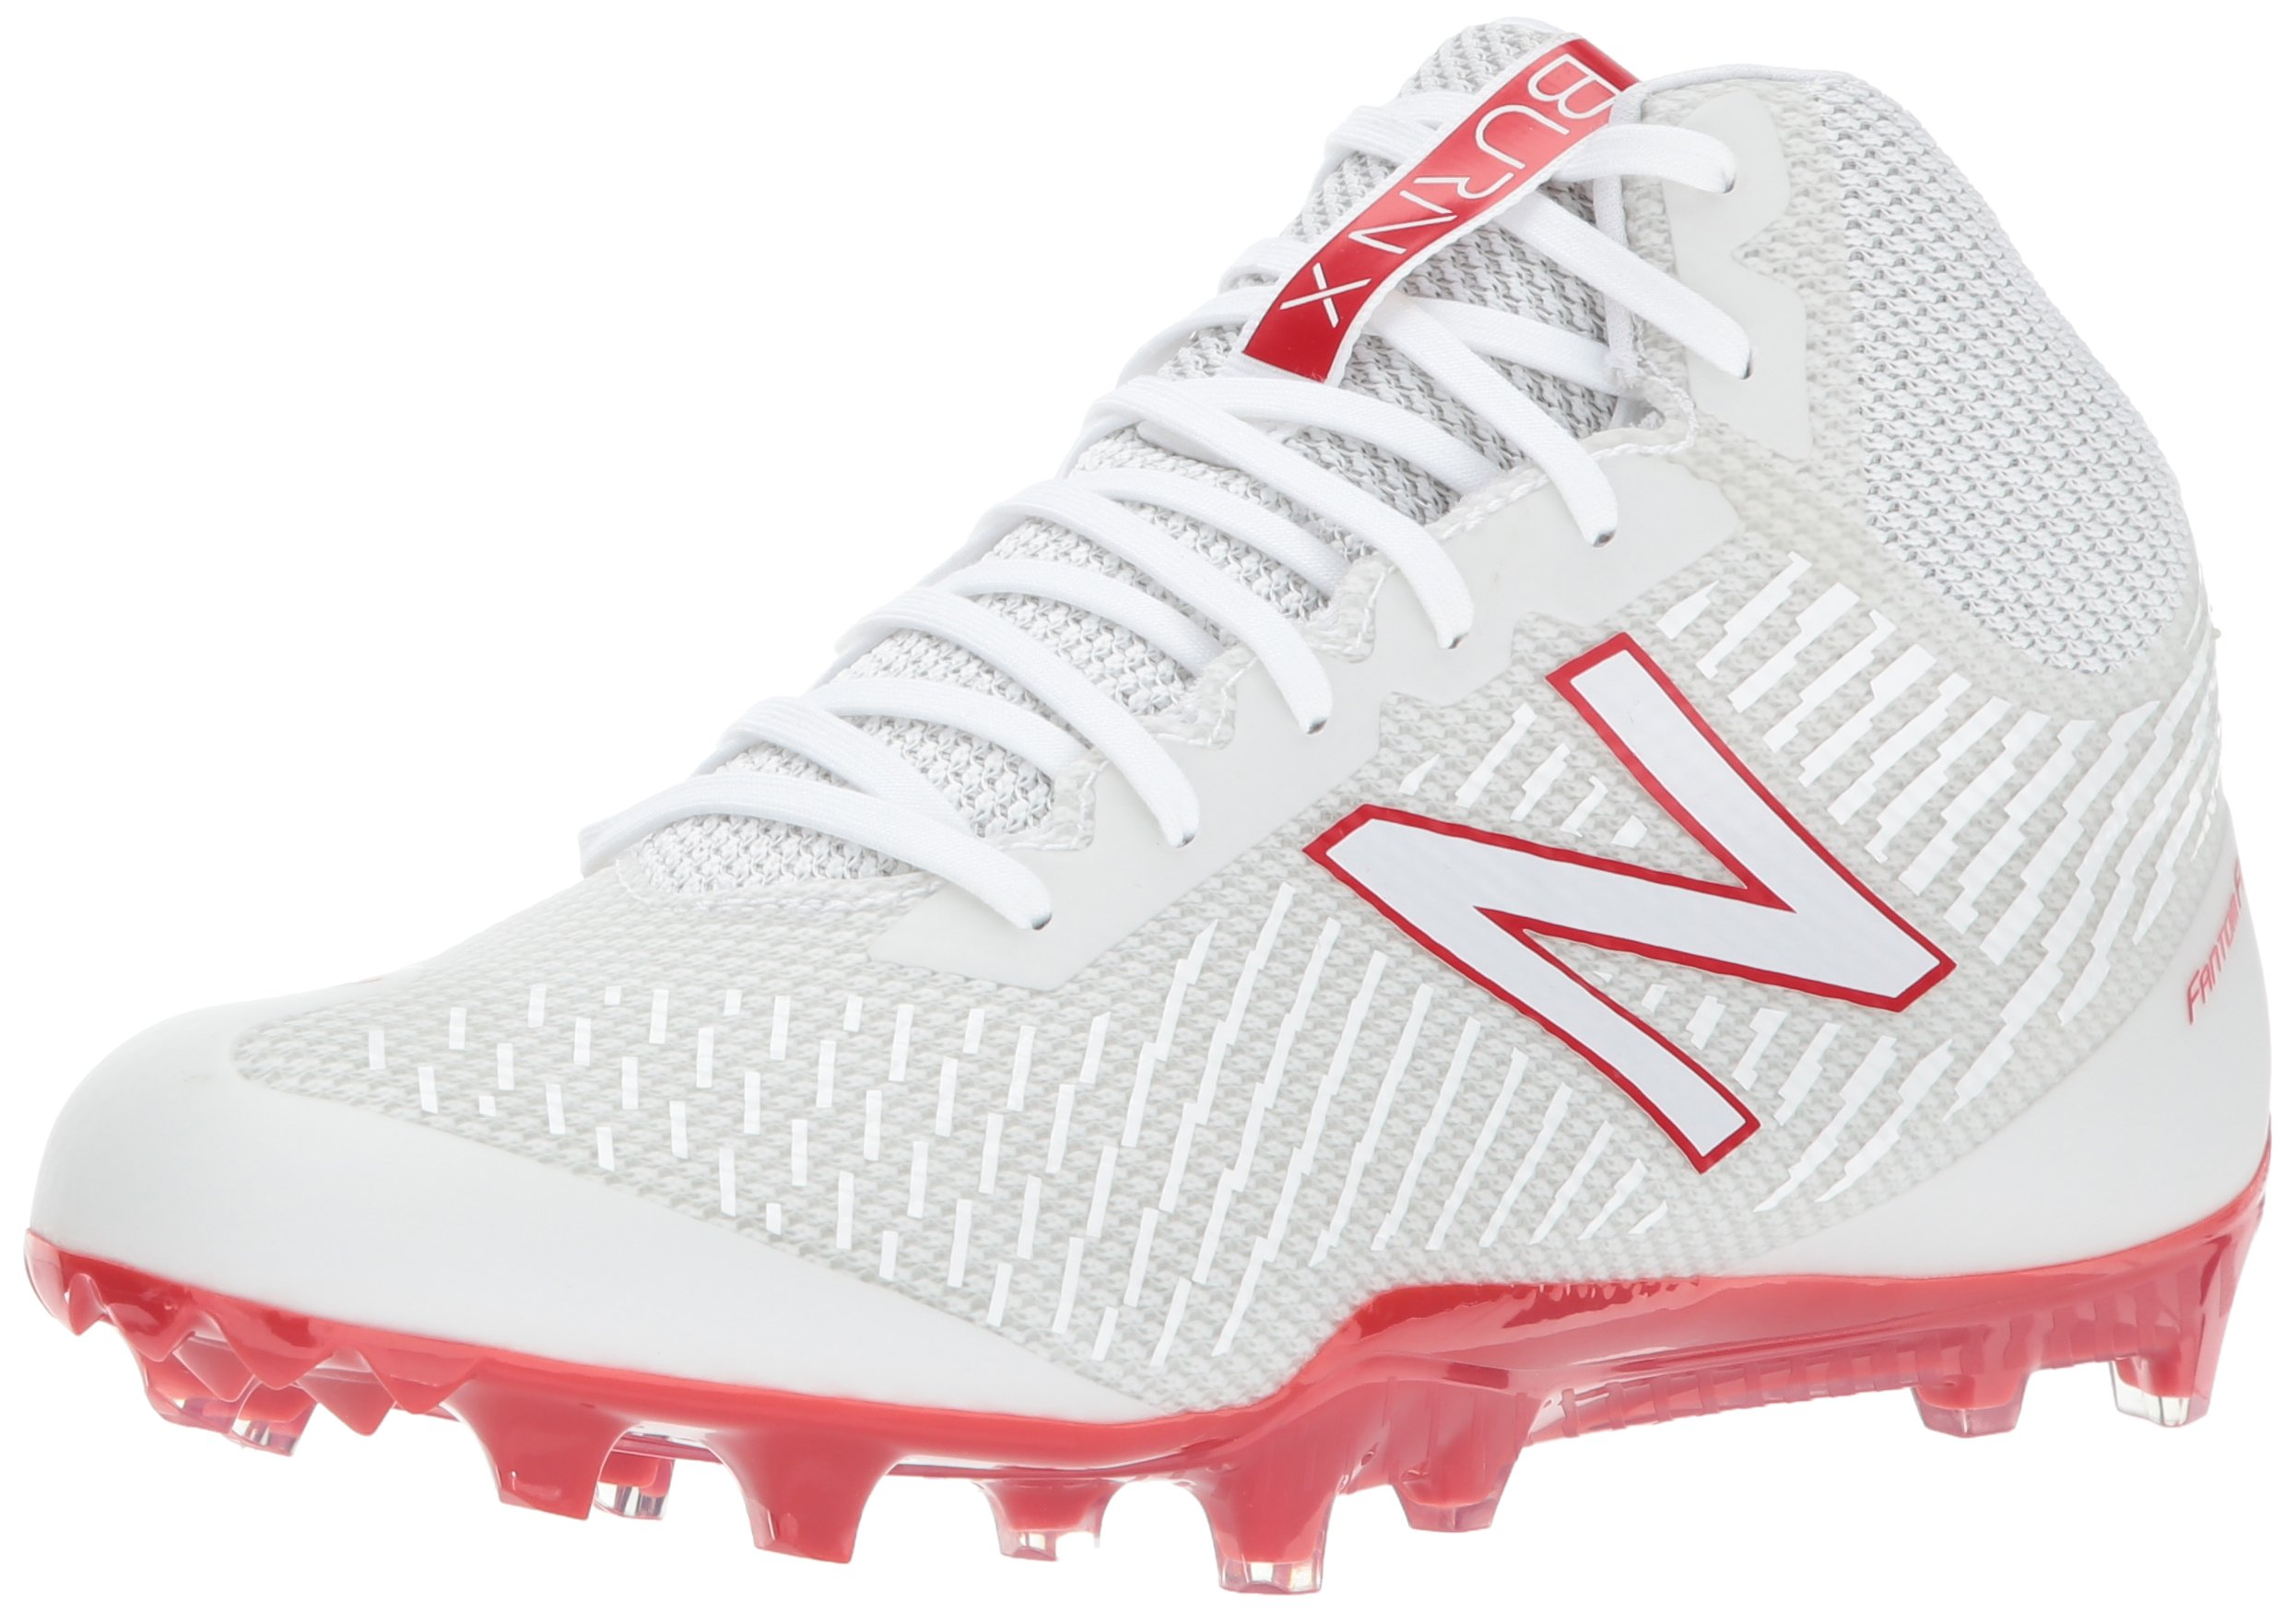 New Balance Men's Burn Mid Speed Lacrosse Shoe, White/Red, 6.5 D US by New Balance